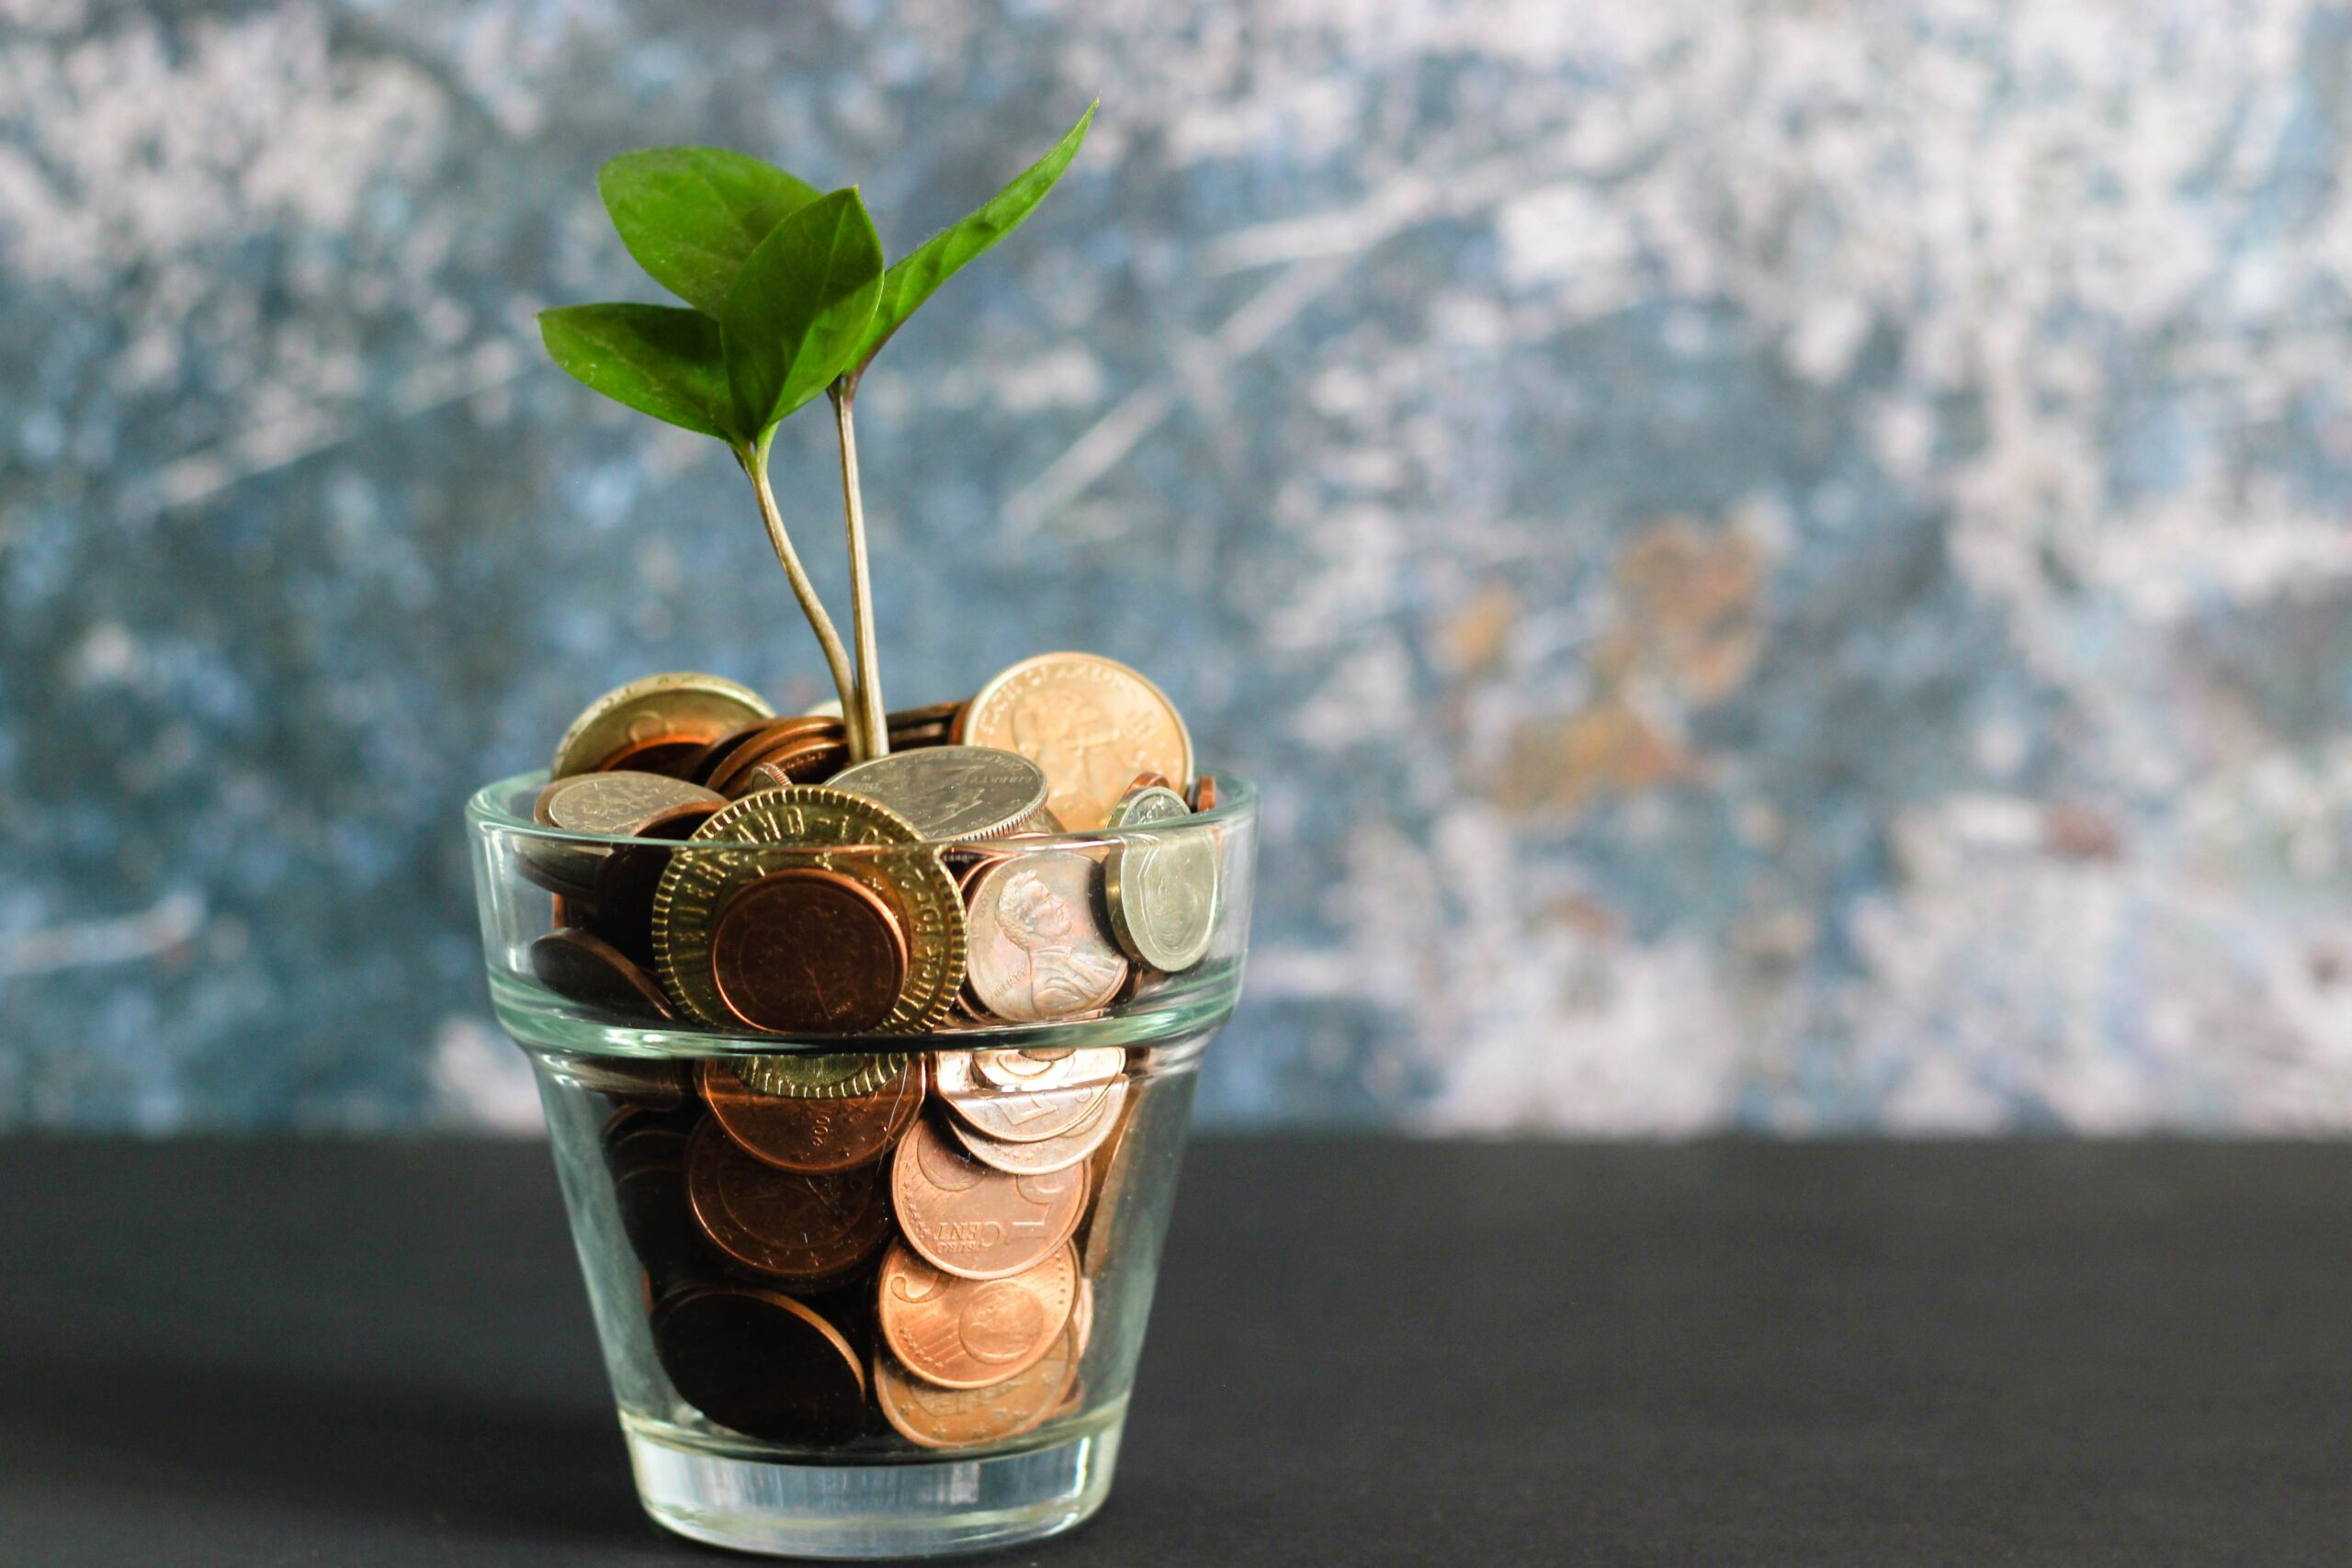 Do I really need to update my fund's trust deed?